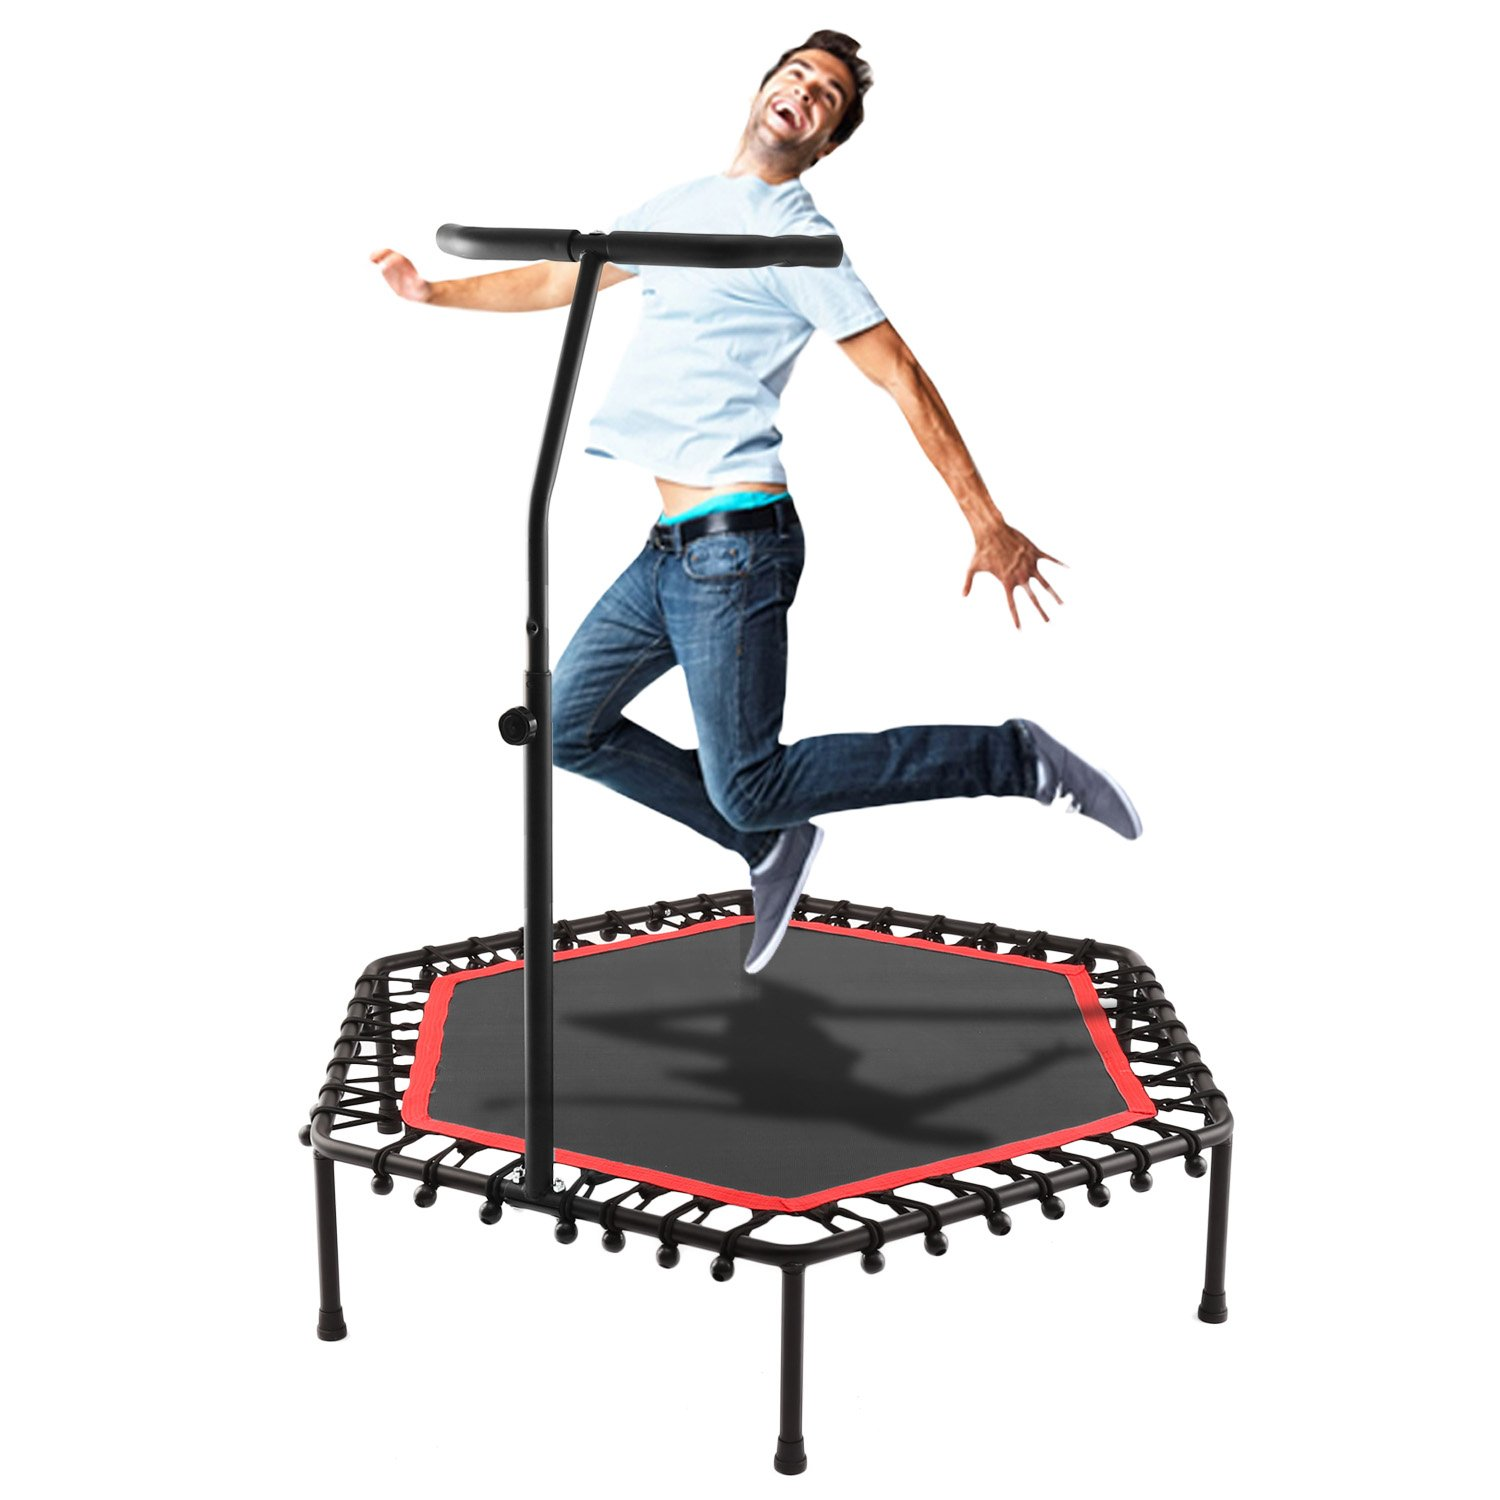 Juice Master S Pro Bounce Rebounder: Indoor Trampolines : Online Shopping For Clothing, Shoes